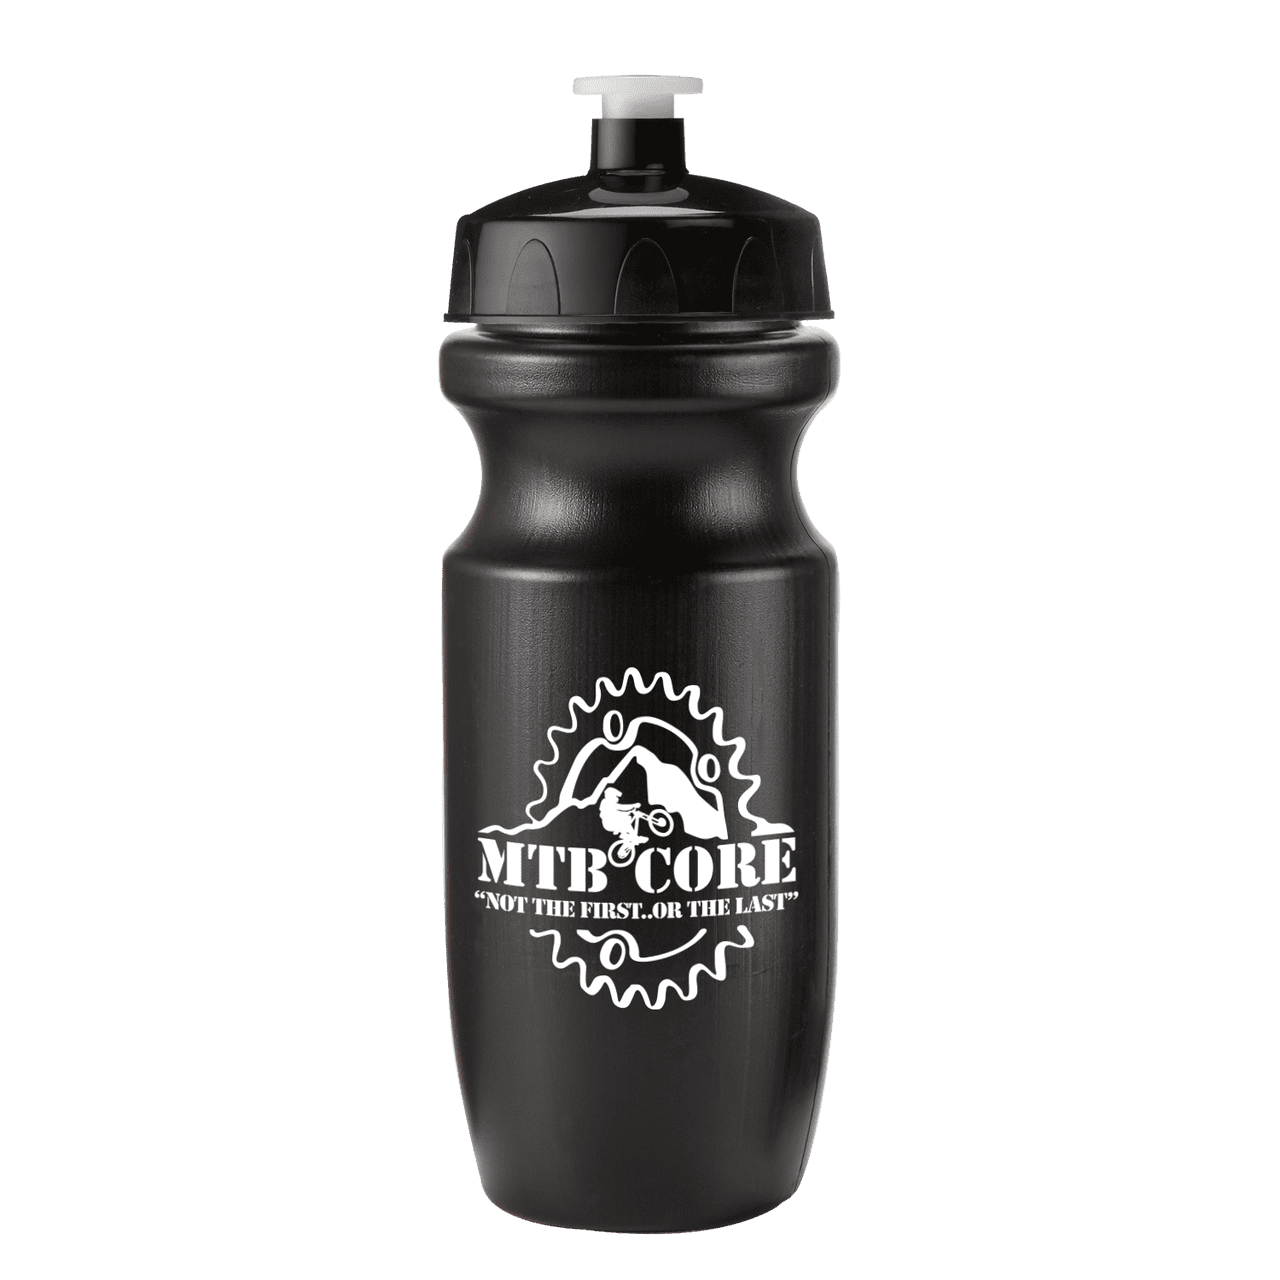 20 oz. Bike Bottle - Oasis Promos